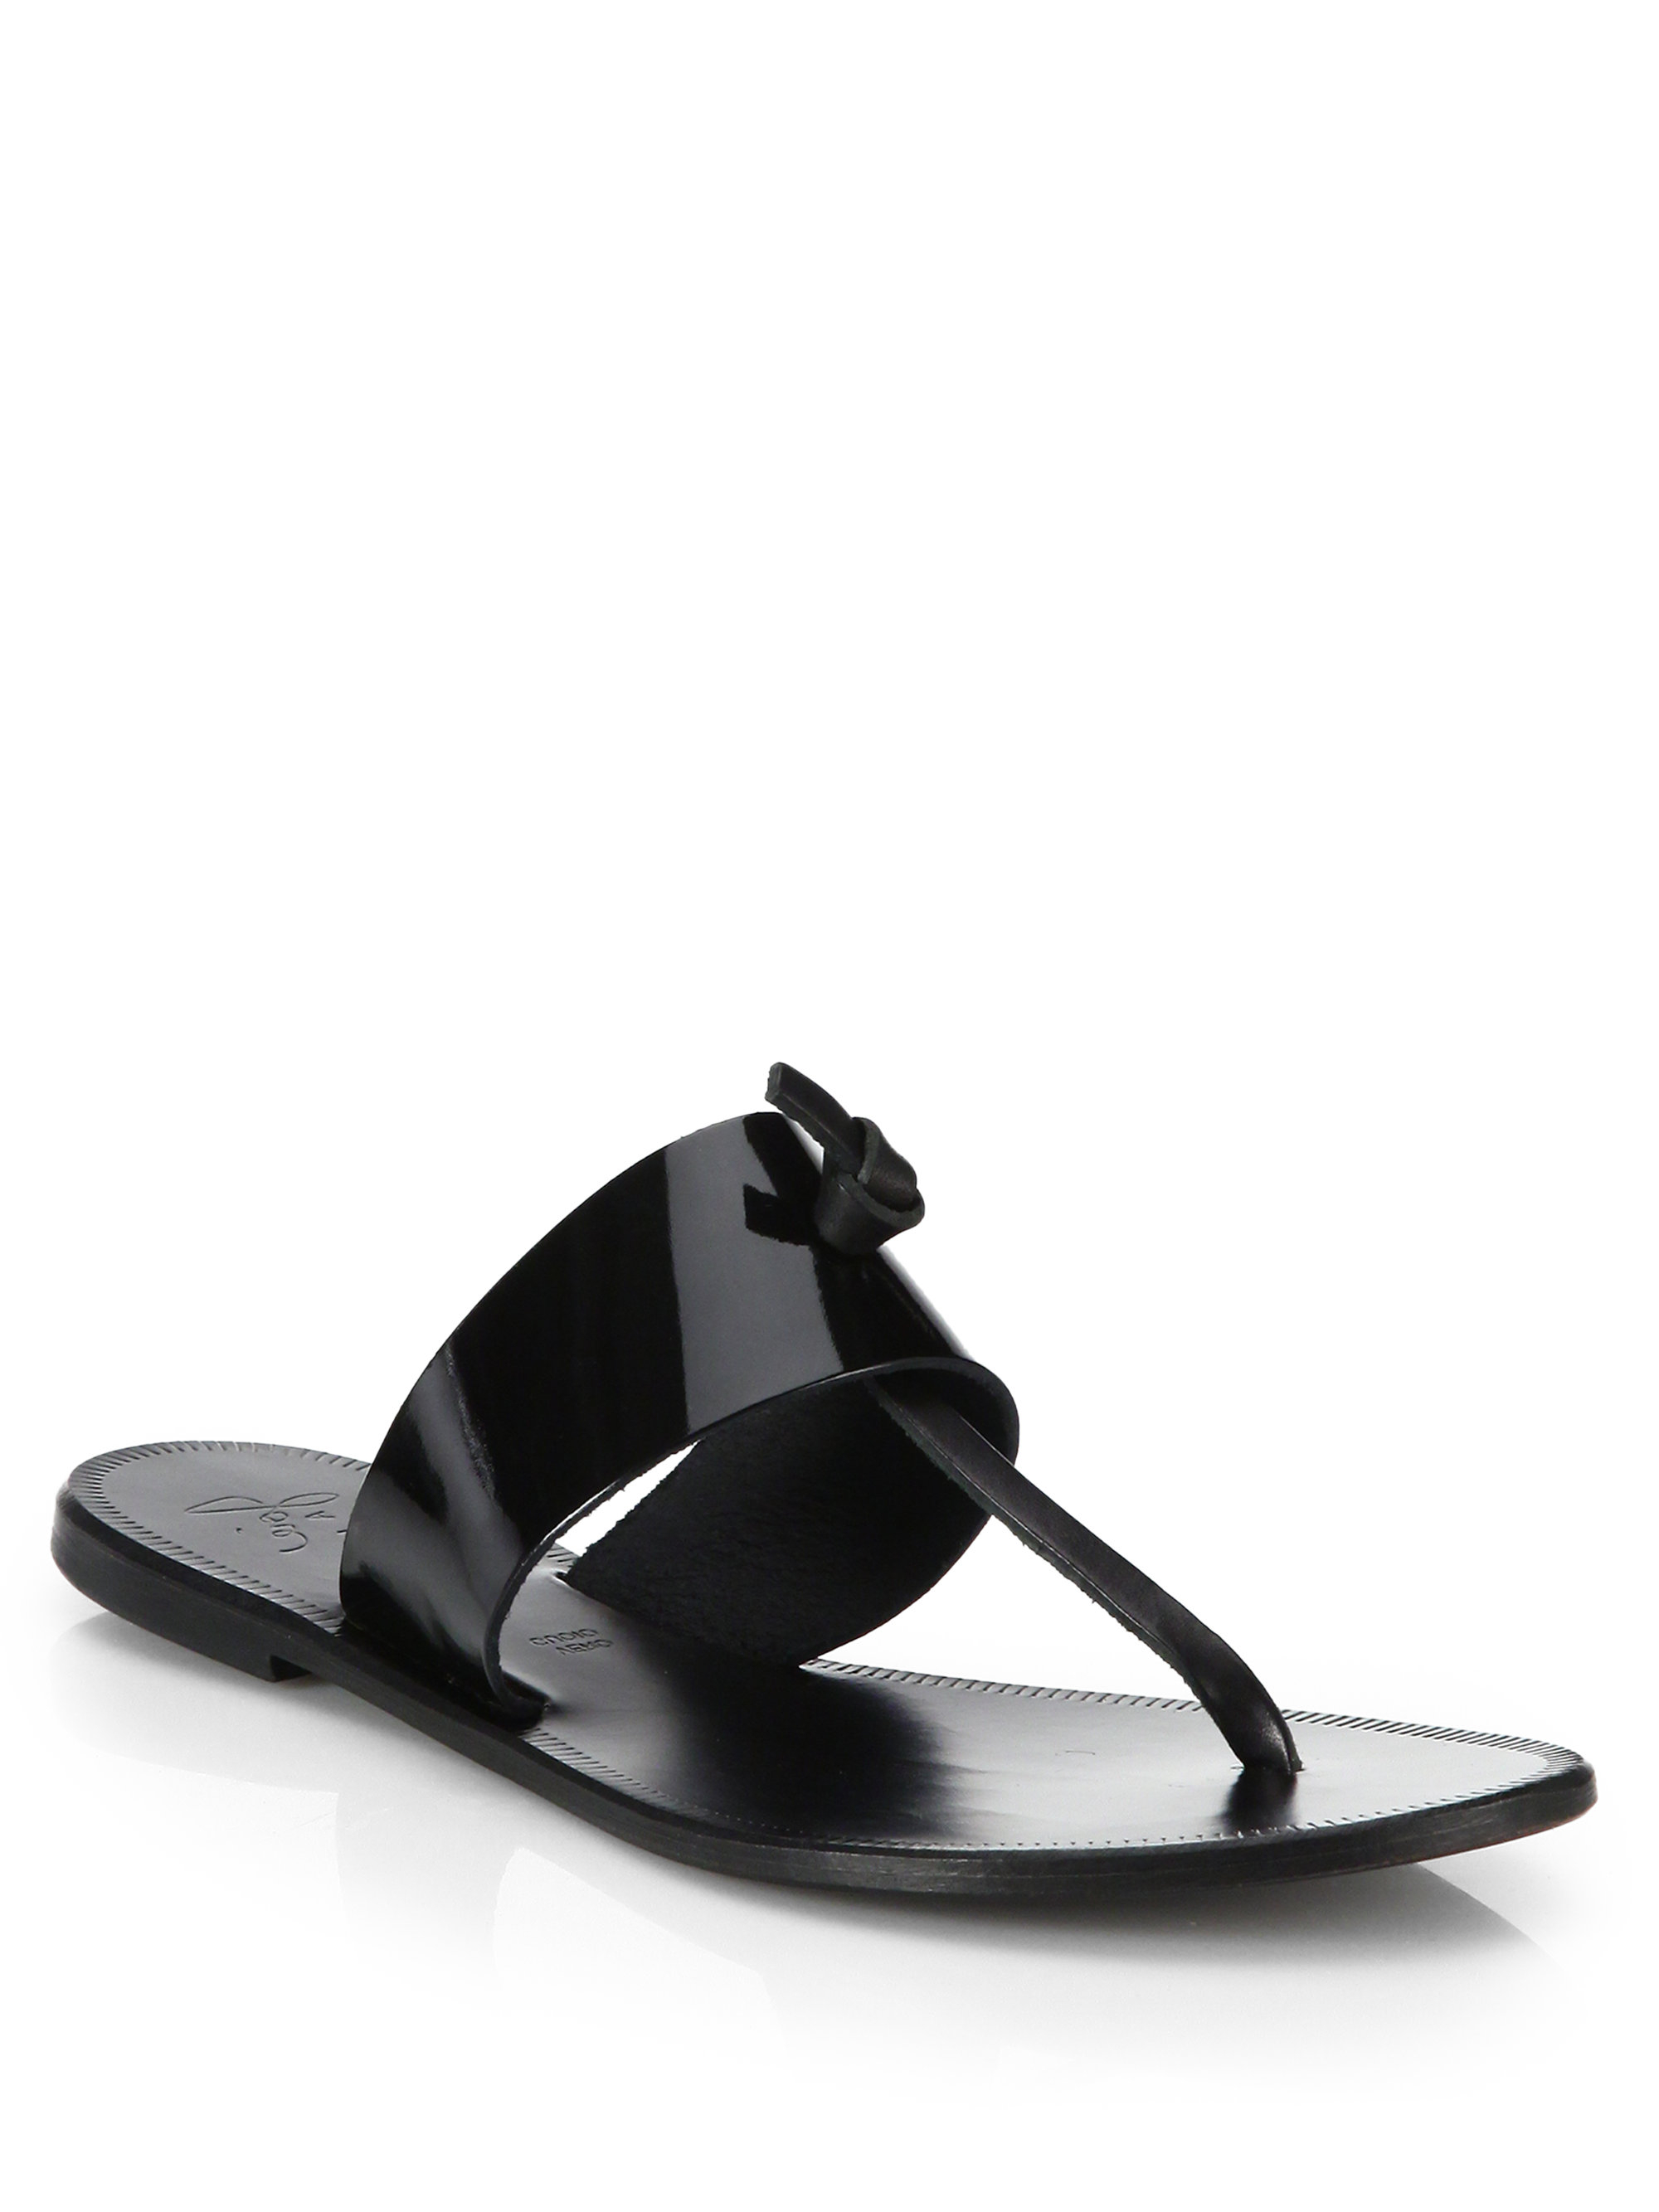 Joie Nice Patent Leather Thong Sandals